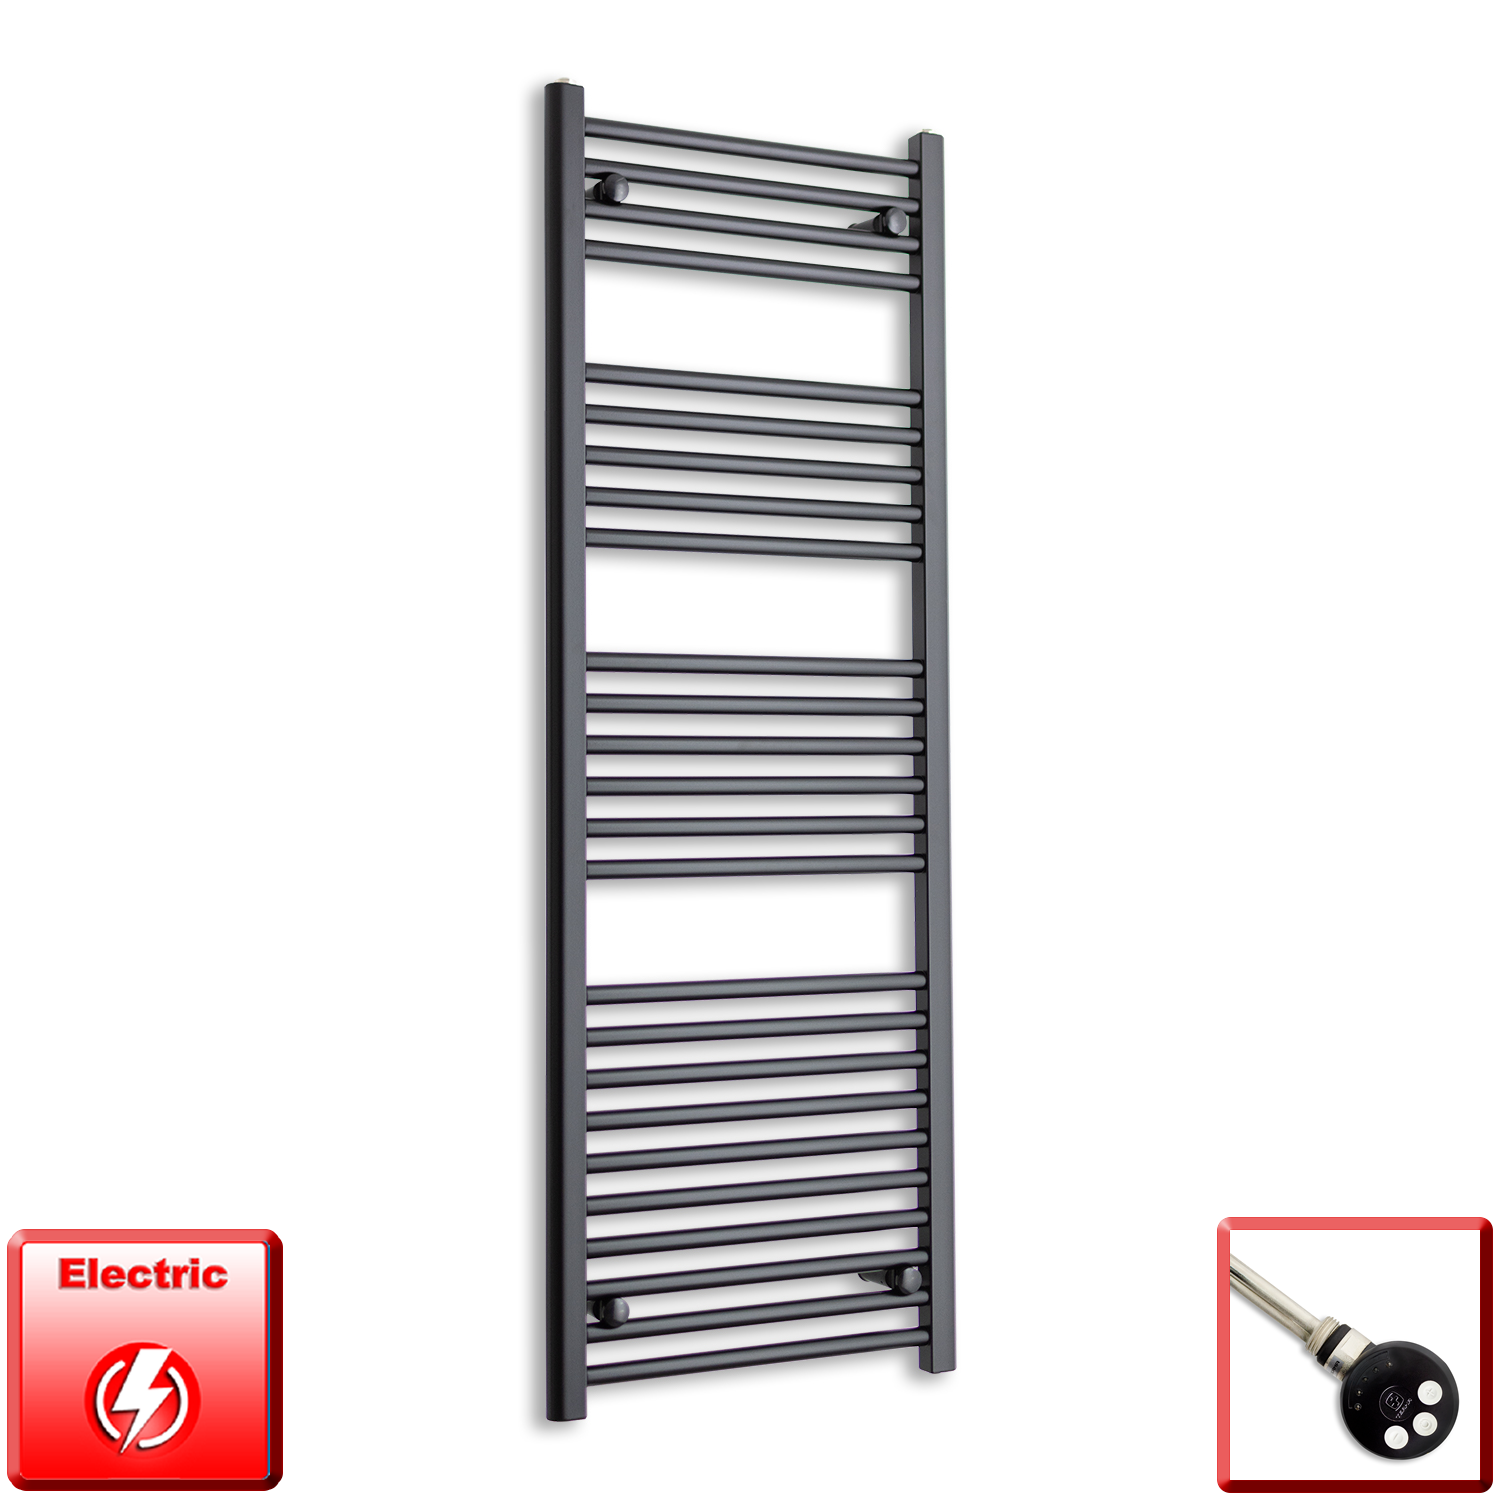 450mm Wide 1400mm High Flat Black Pre-Filled Electric Heated Towel Rail Radiator HTR,MEG Thermostatic Element